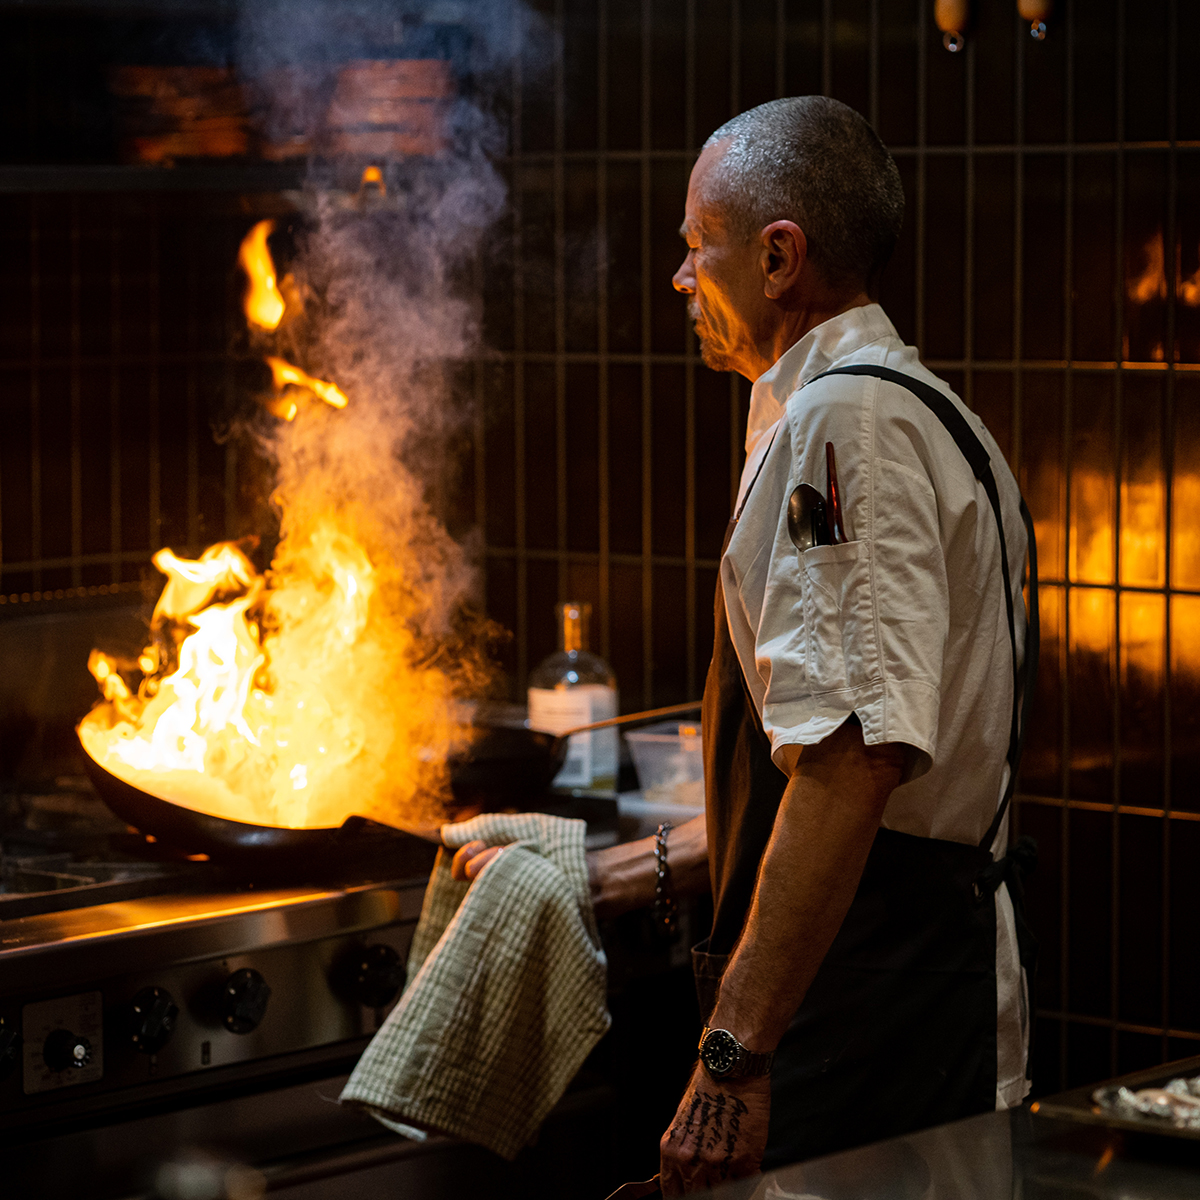 Be part of an immersive cooking experience like no other, as our very own Simon Bryant leads an intimate cooking masterclass & three-course meal on the Rooftop of Sparkke at the Whitmore on Sunday 30 August 🔥👉 https://t.co/4G5LUm0aj7 🎟️ https://t.co/EBDLjlYcLP